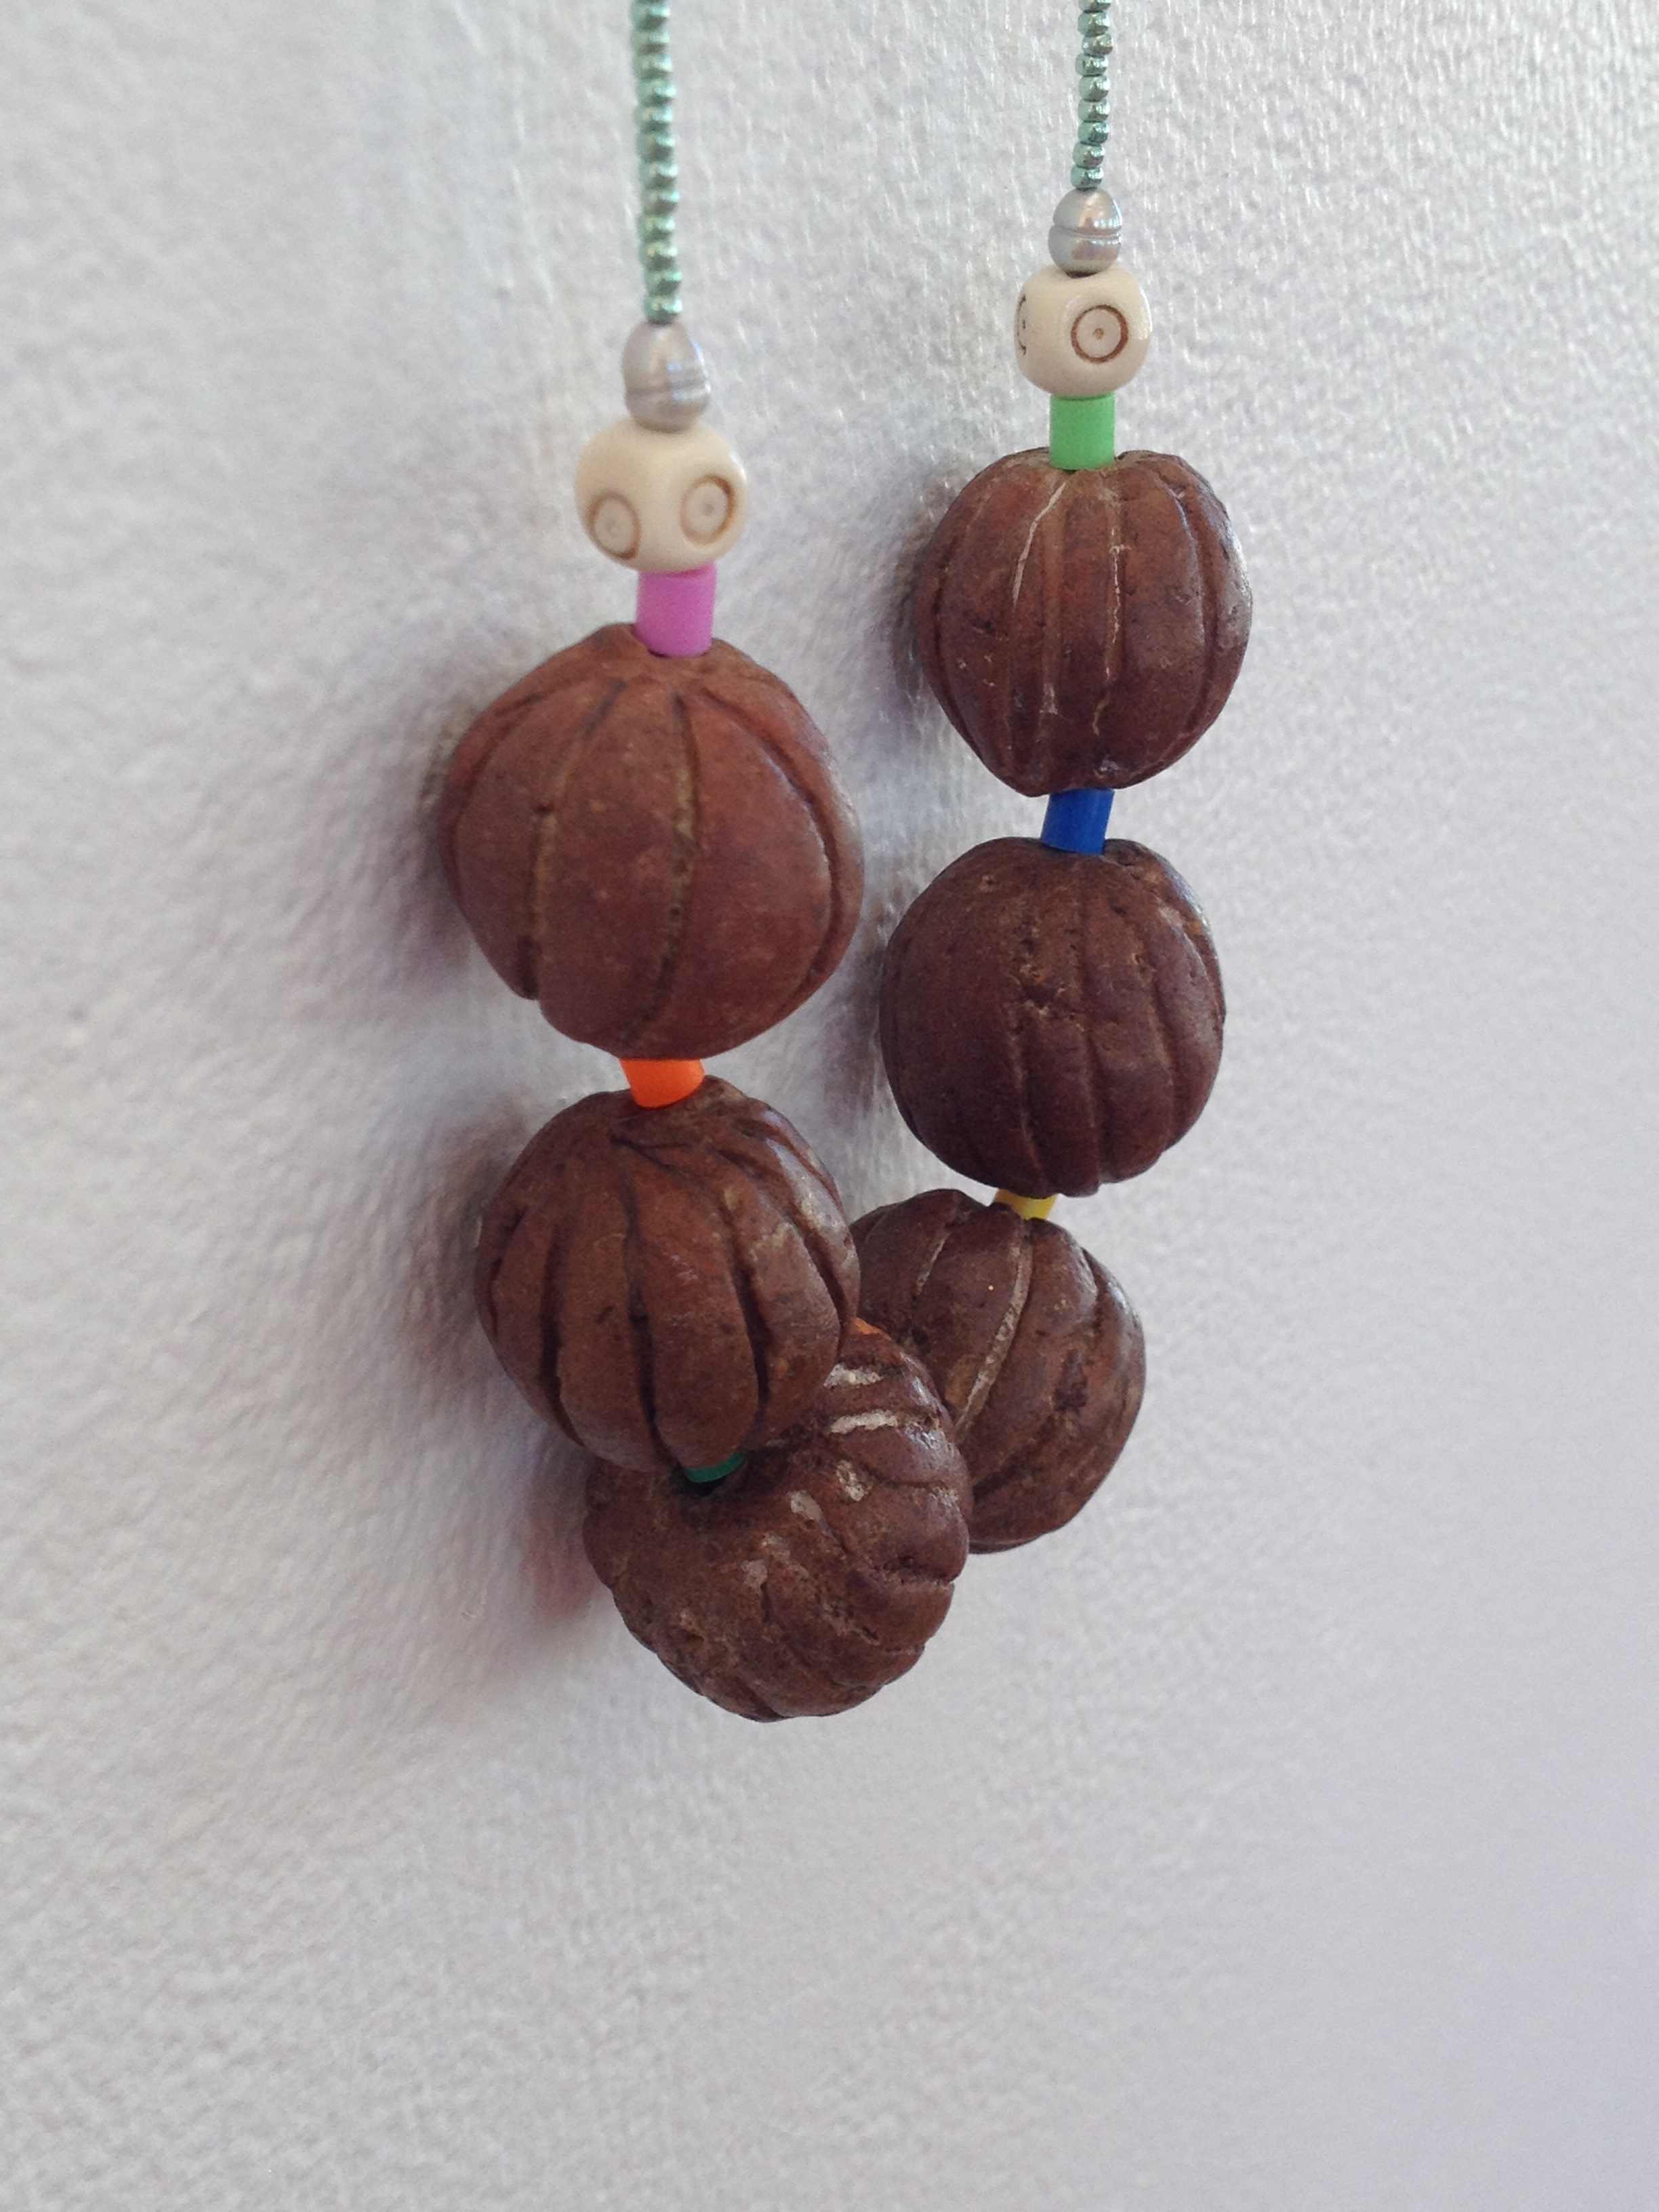 Bonbon_Necklace_10_detail.jpg